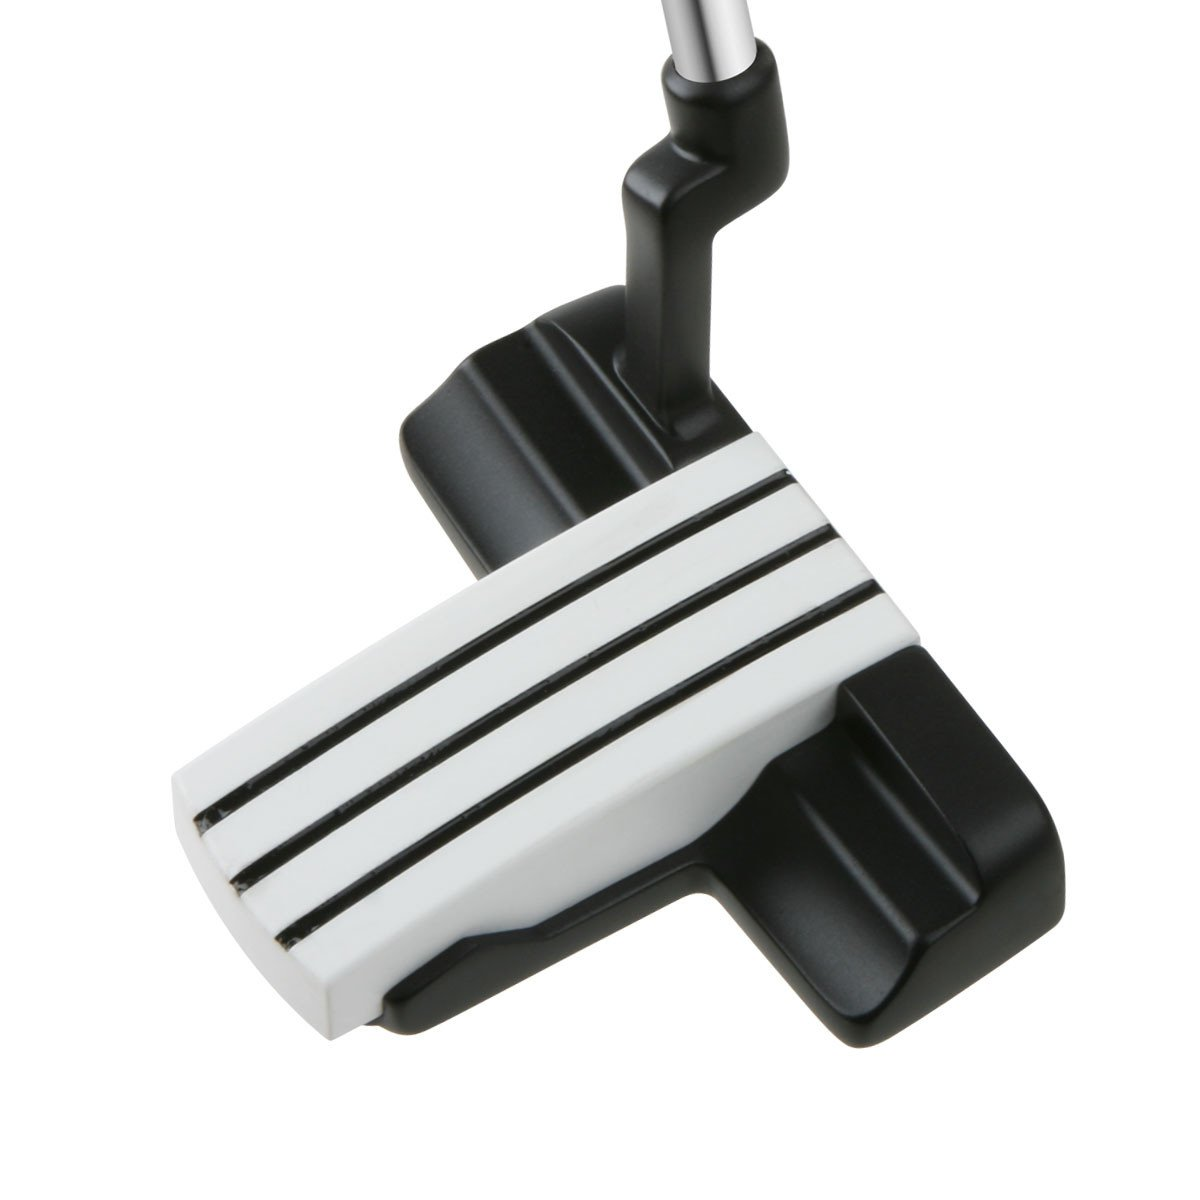 Bionik Golf Assembled 703 Black Putter RH, 33